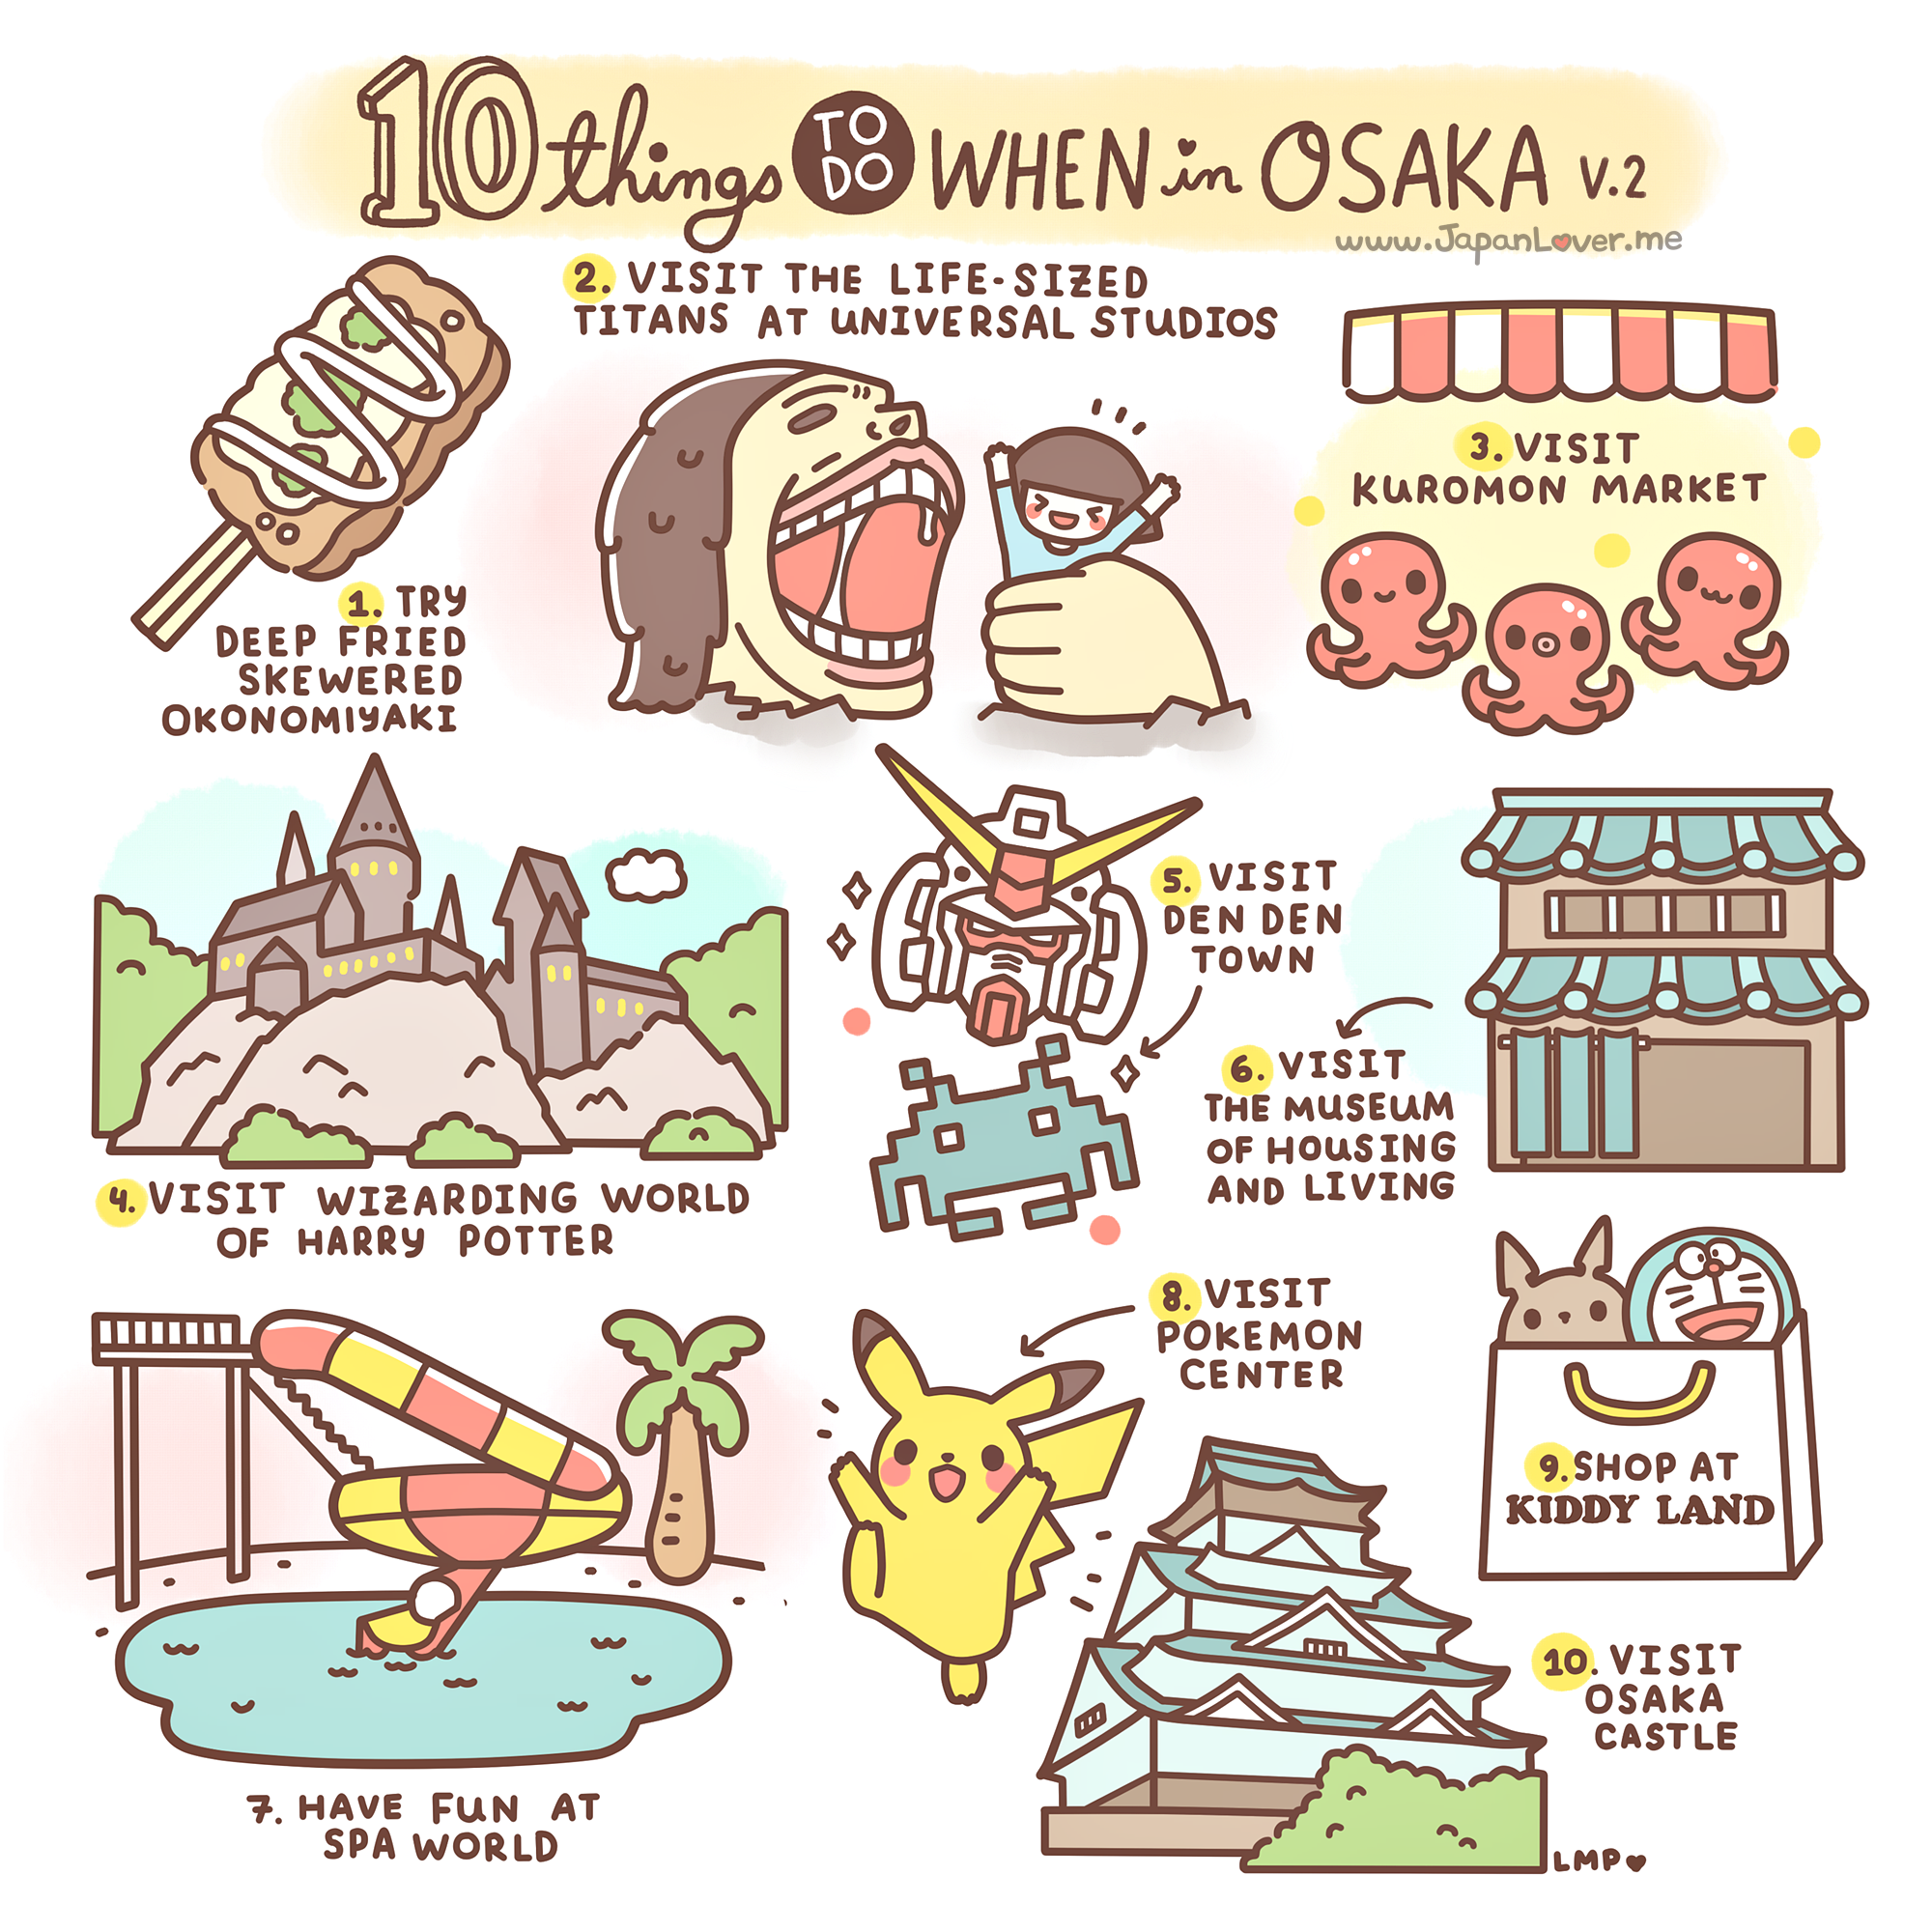 b21263d303 10 Things To Do When in Osaka by Japan Lover Me (2015)